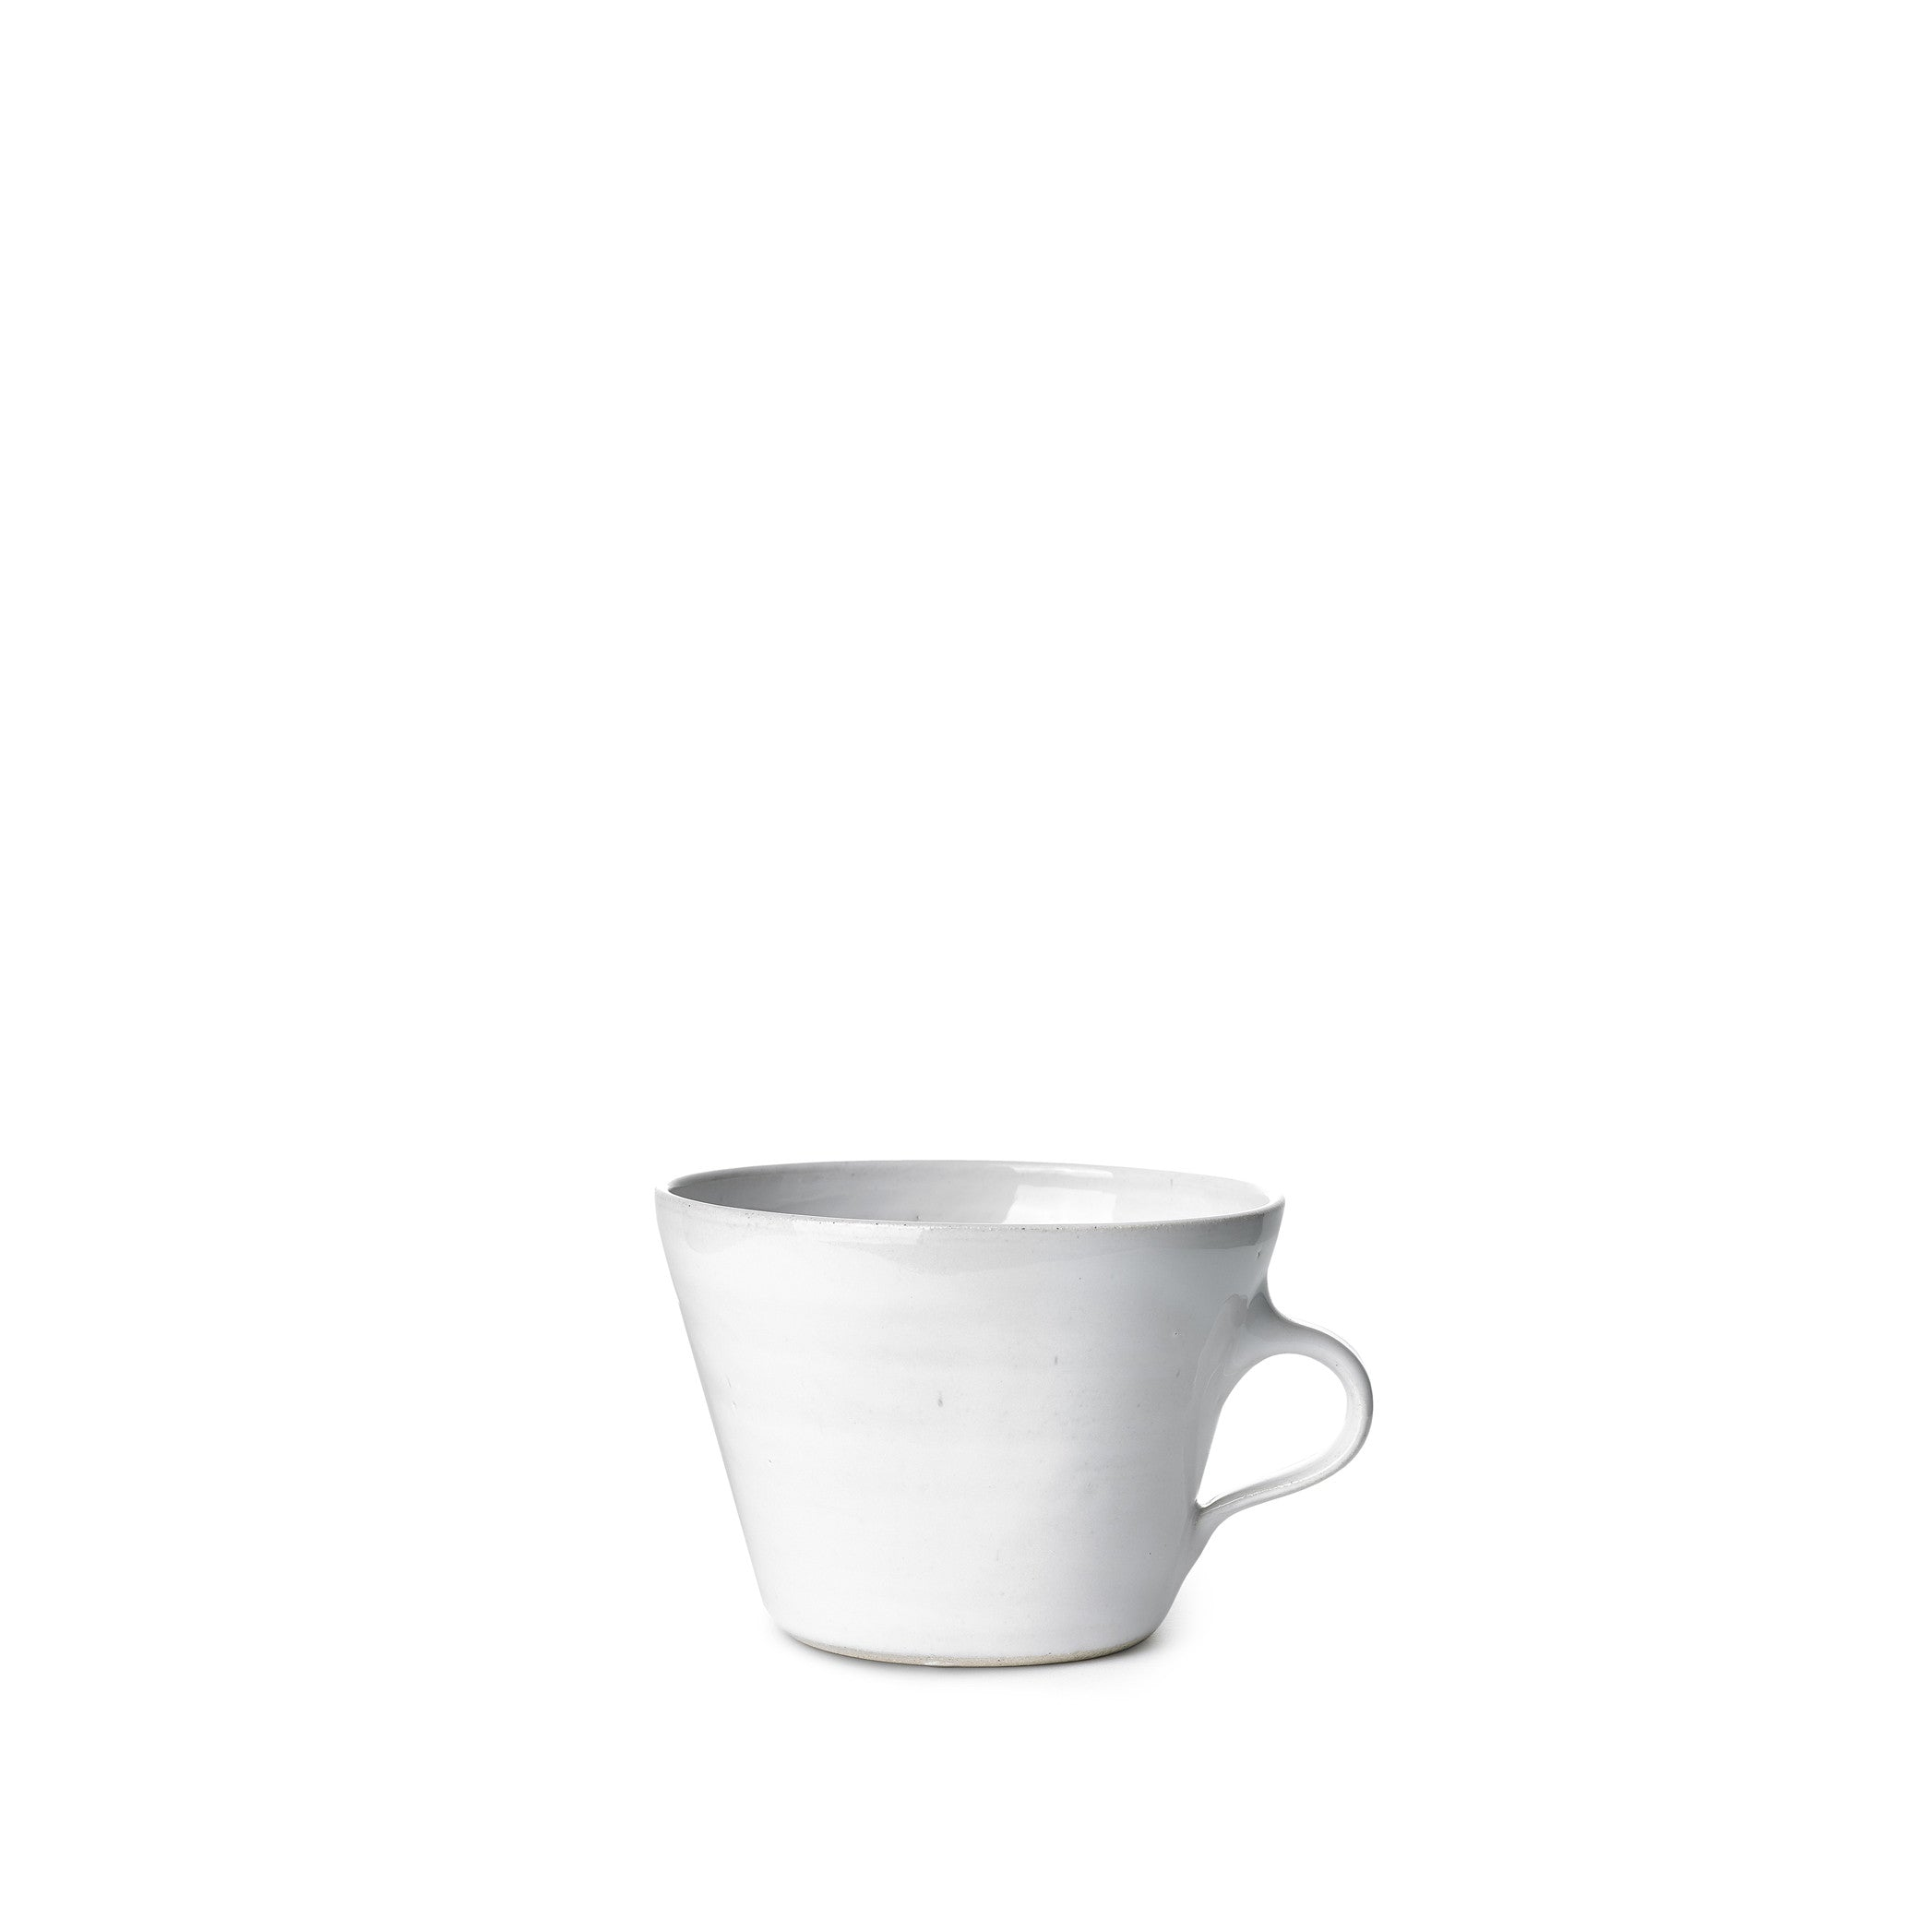 Wonki Ware Squat Fluted Mug in White